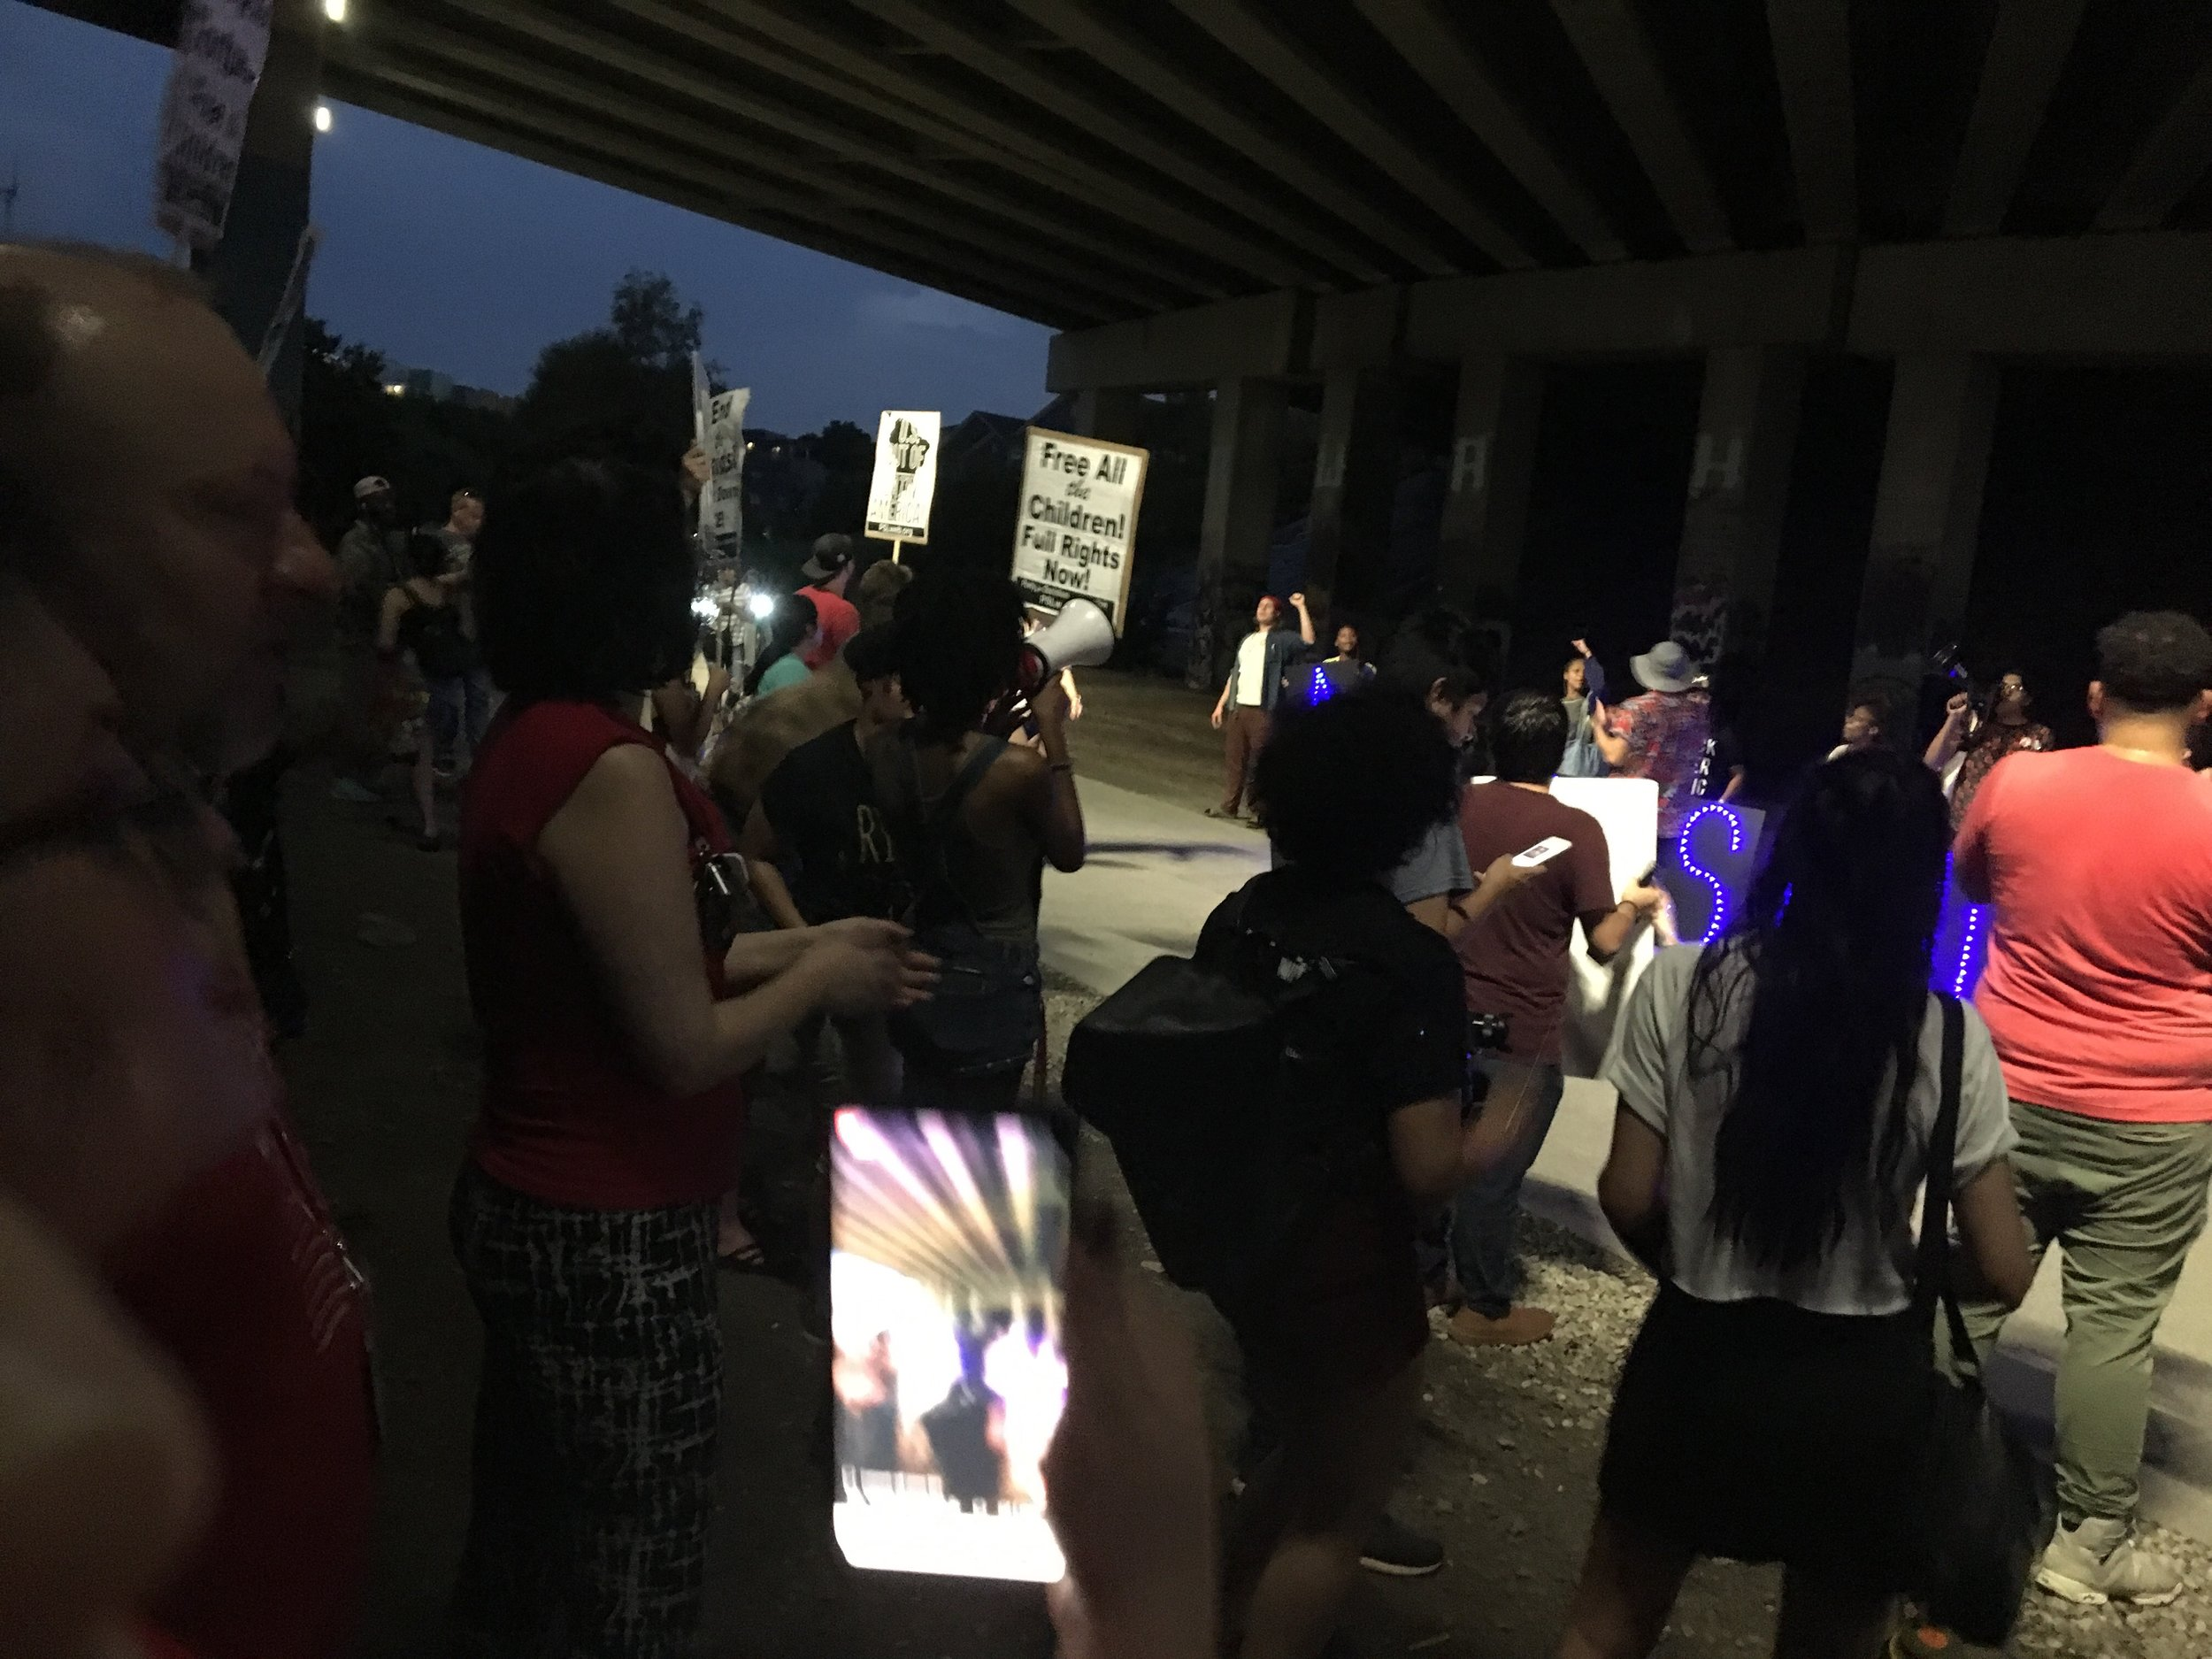 This was from a local Abolish ICE protest I went to on Saturday night